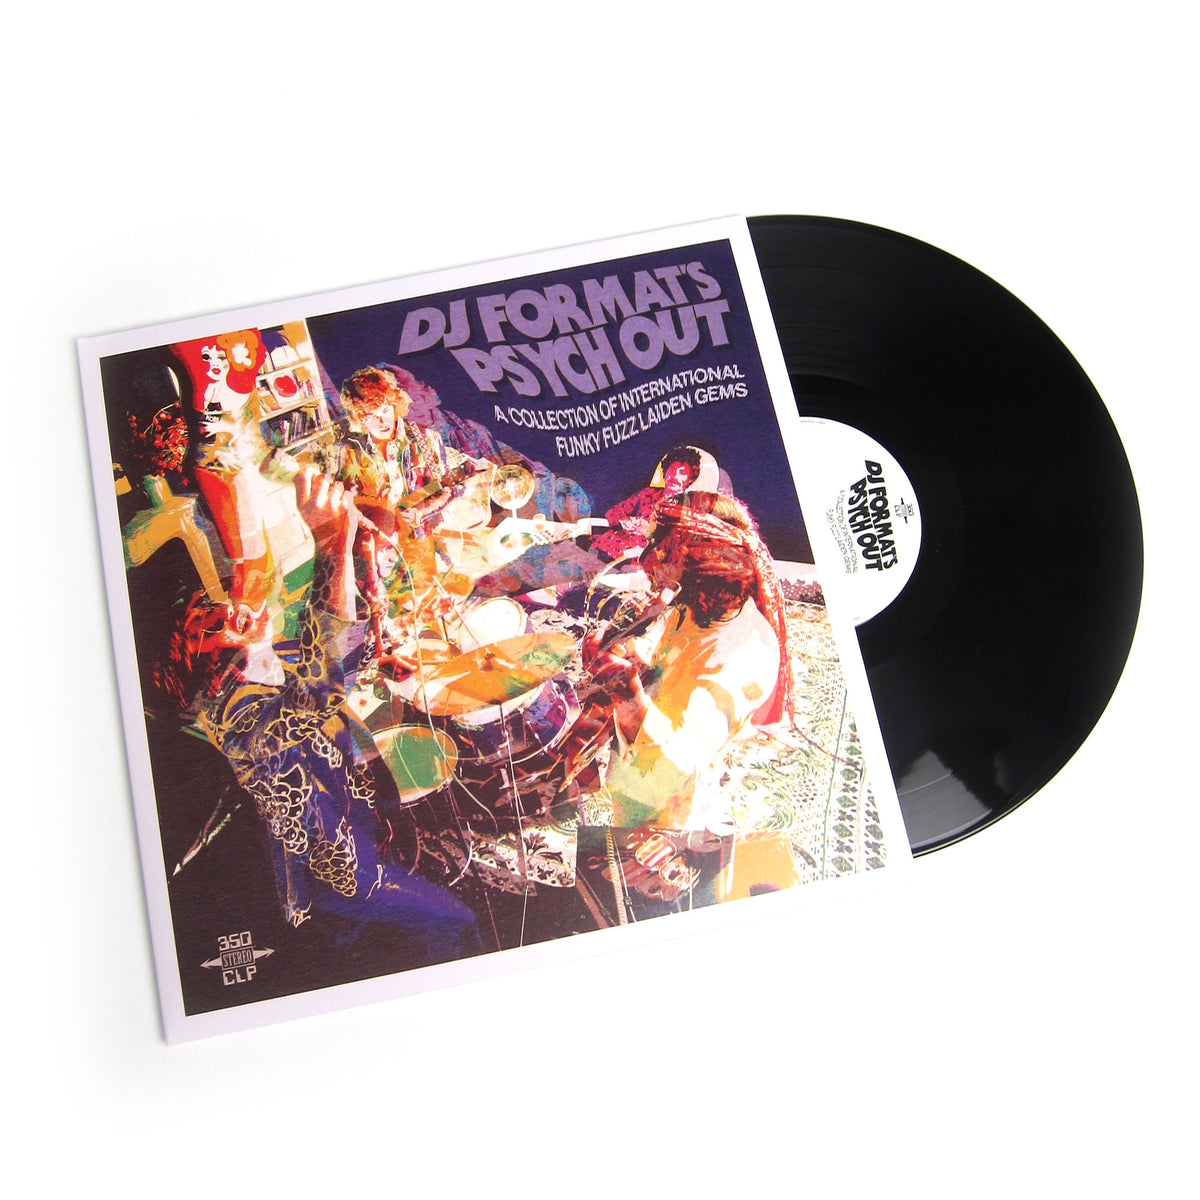 DJ Format: Psych Out - A Collection Of International Funky Fuzz Laiden Gems Vinyl 2LP